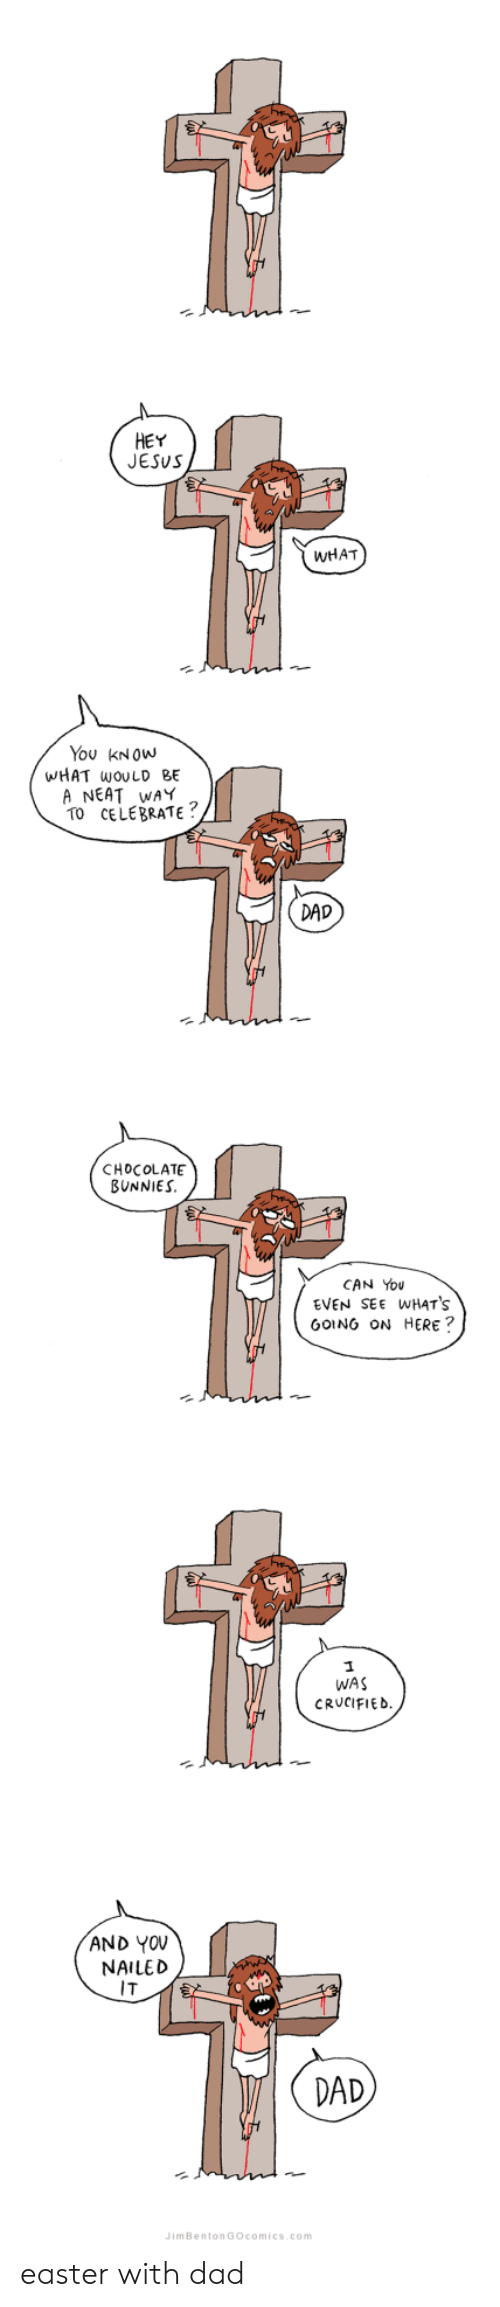 Crucified: HEY  JESUS  WHAT  You KNOWw  WHAT wOULD BE  A NEAT WAY  TO CELEBRATE  DAD  CHOCOLATE  BUNNIES  CAN You  EVEN SEE WHATS  GOING ON HERE?  WAS  CRUCIFIED  AND YOV  NAILED  IT  2  DAD  imBentonGOcomics.com easter with dad